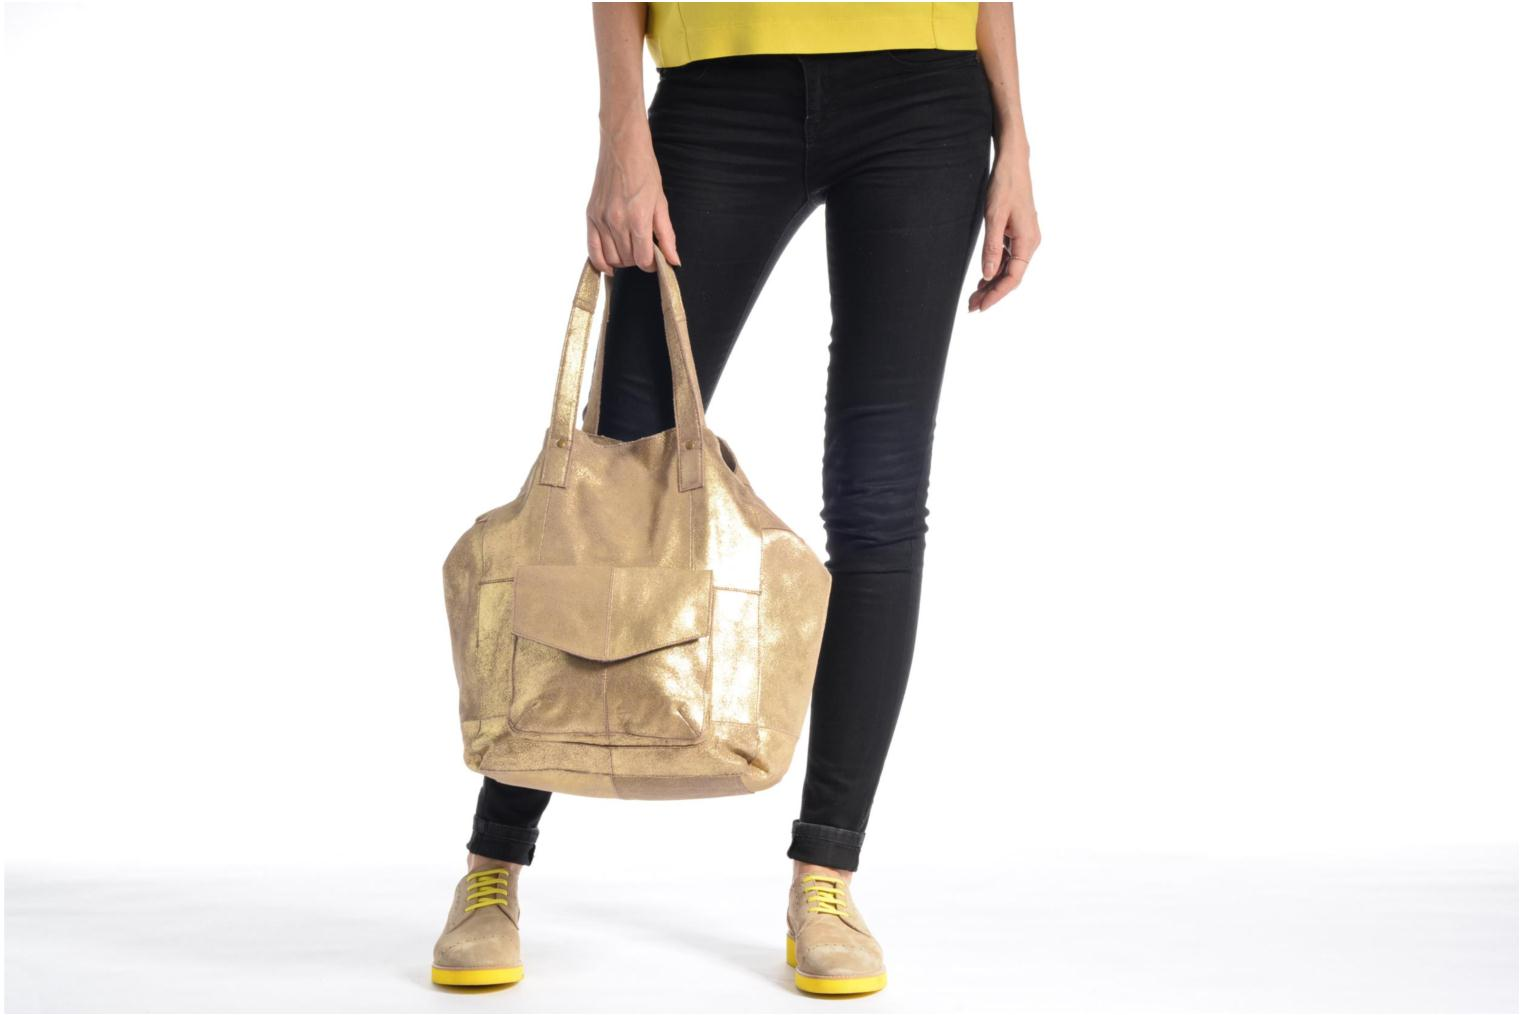 Handtassen Pieces Vanity Leather Big bag Foil Goud en brons boven